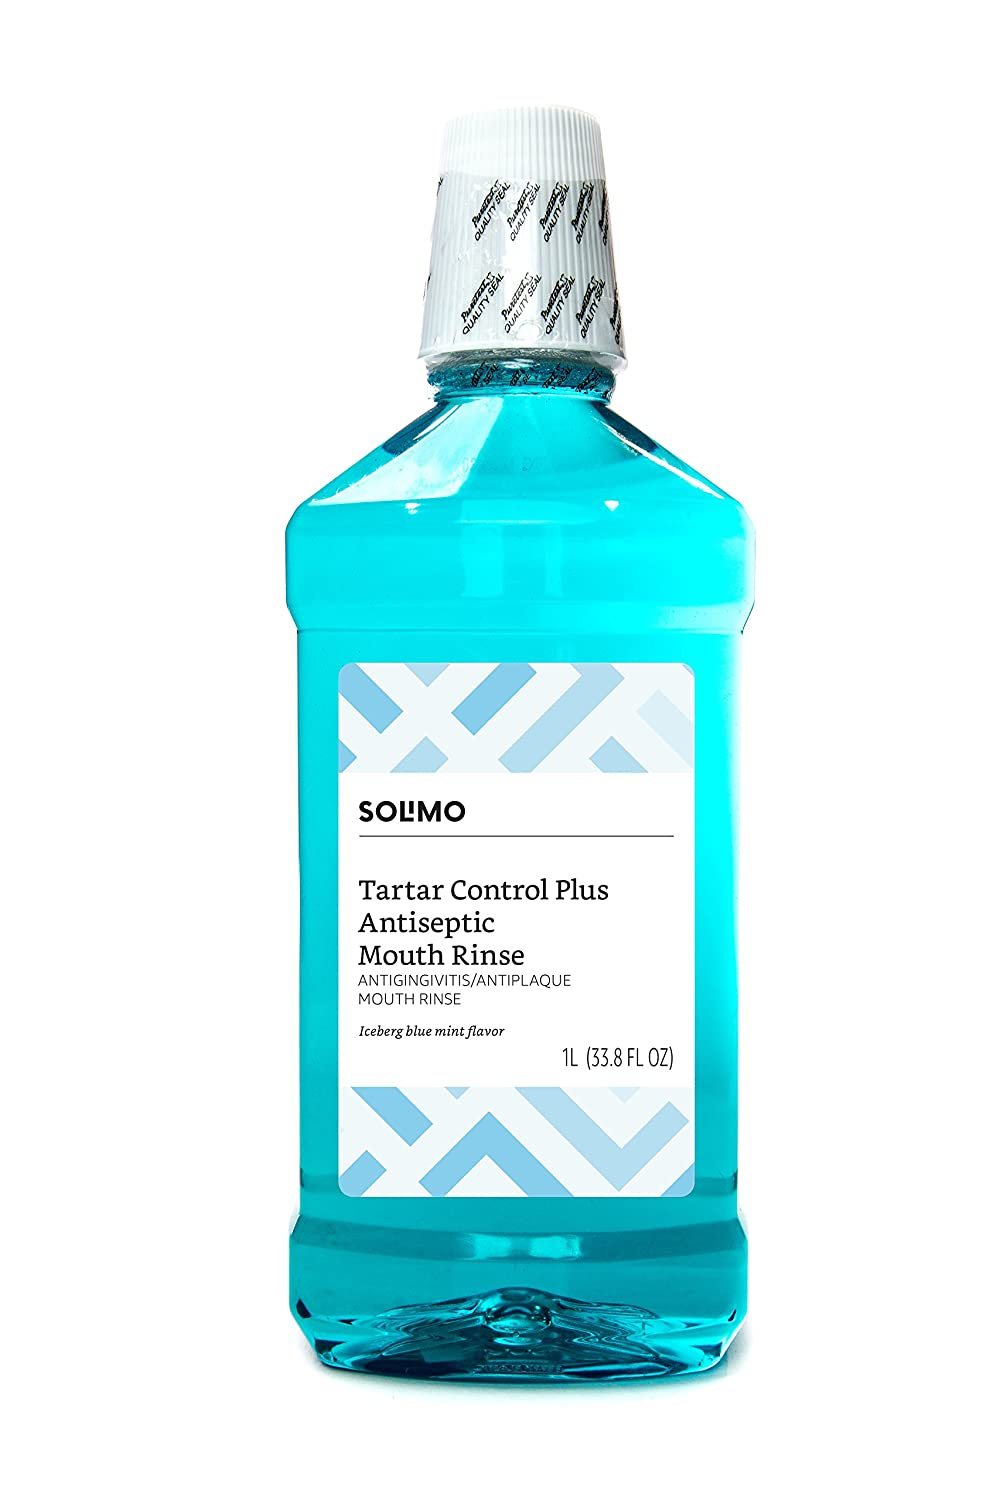 Amazon Brand - Solimo Tartar Control Plus Antiseptic Mouth Rinse, Iceberg Blue Mint, 33.8 Fl Oz (Pack of 1)